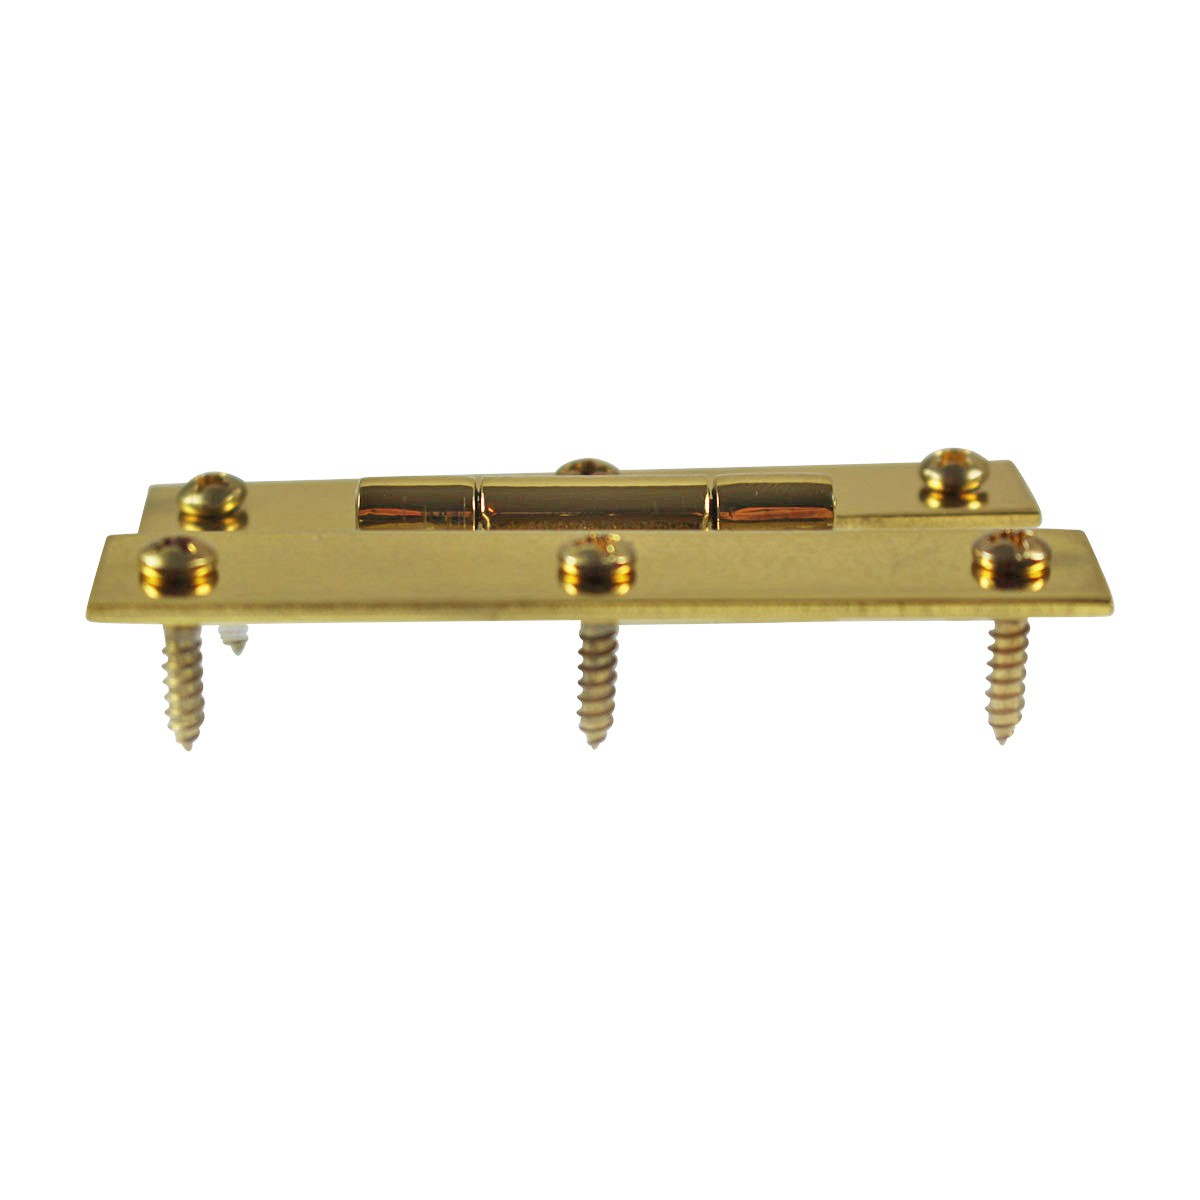 3 Solid Brass Cabinet H Hinge Offset Long Lasting Finish Pack of 10 H Hinge H Hinges Brass Hinge